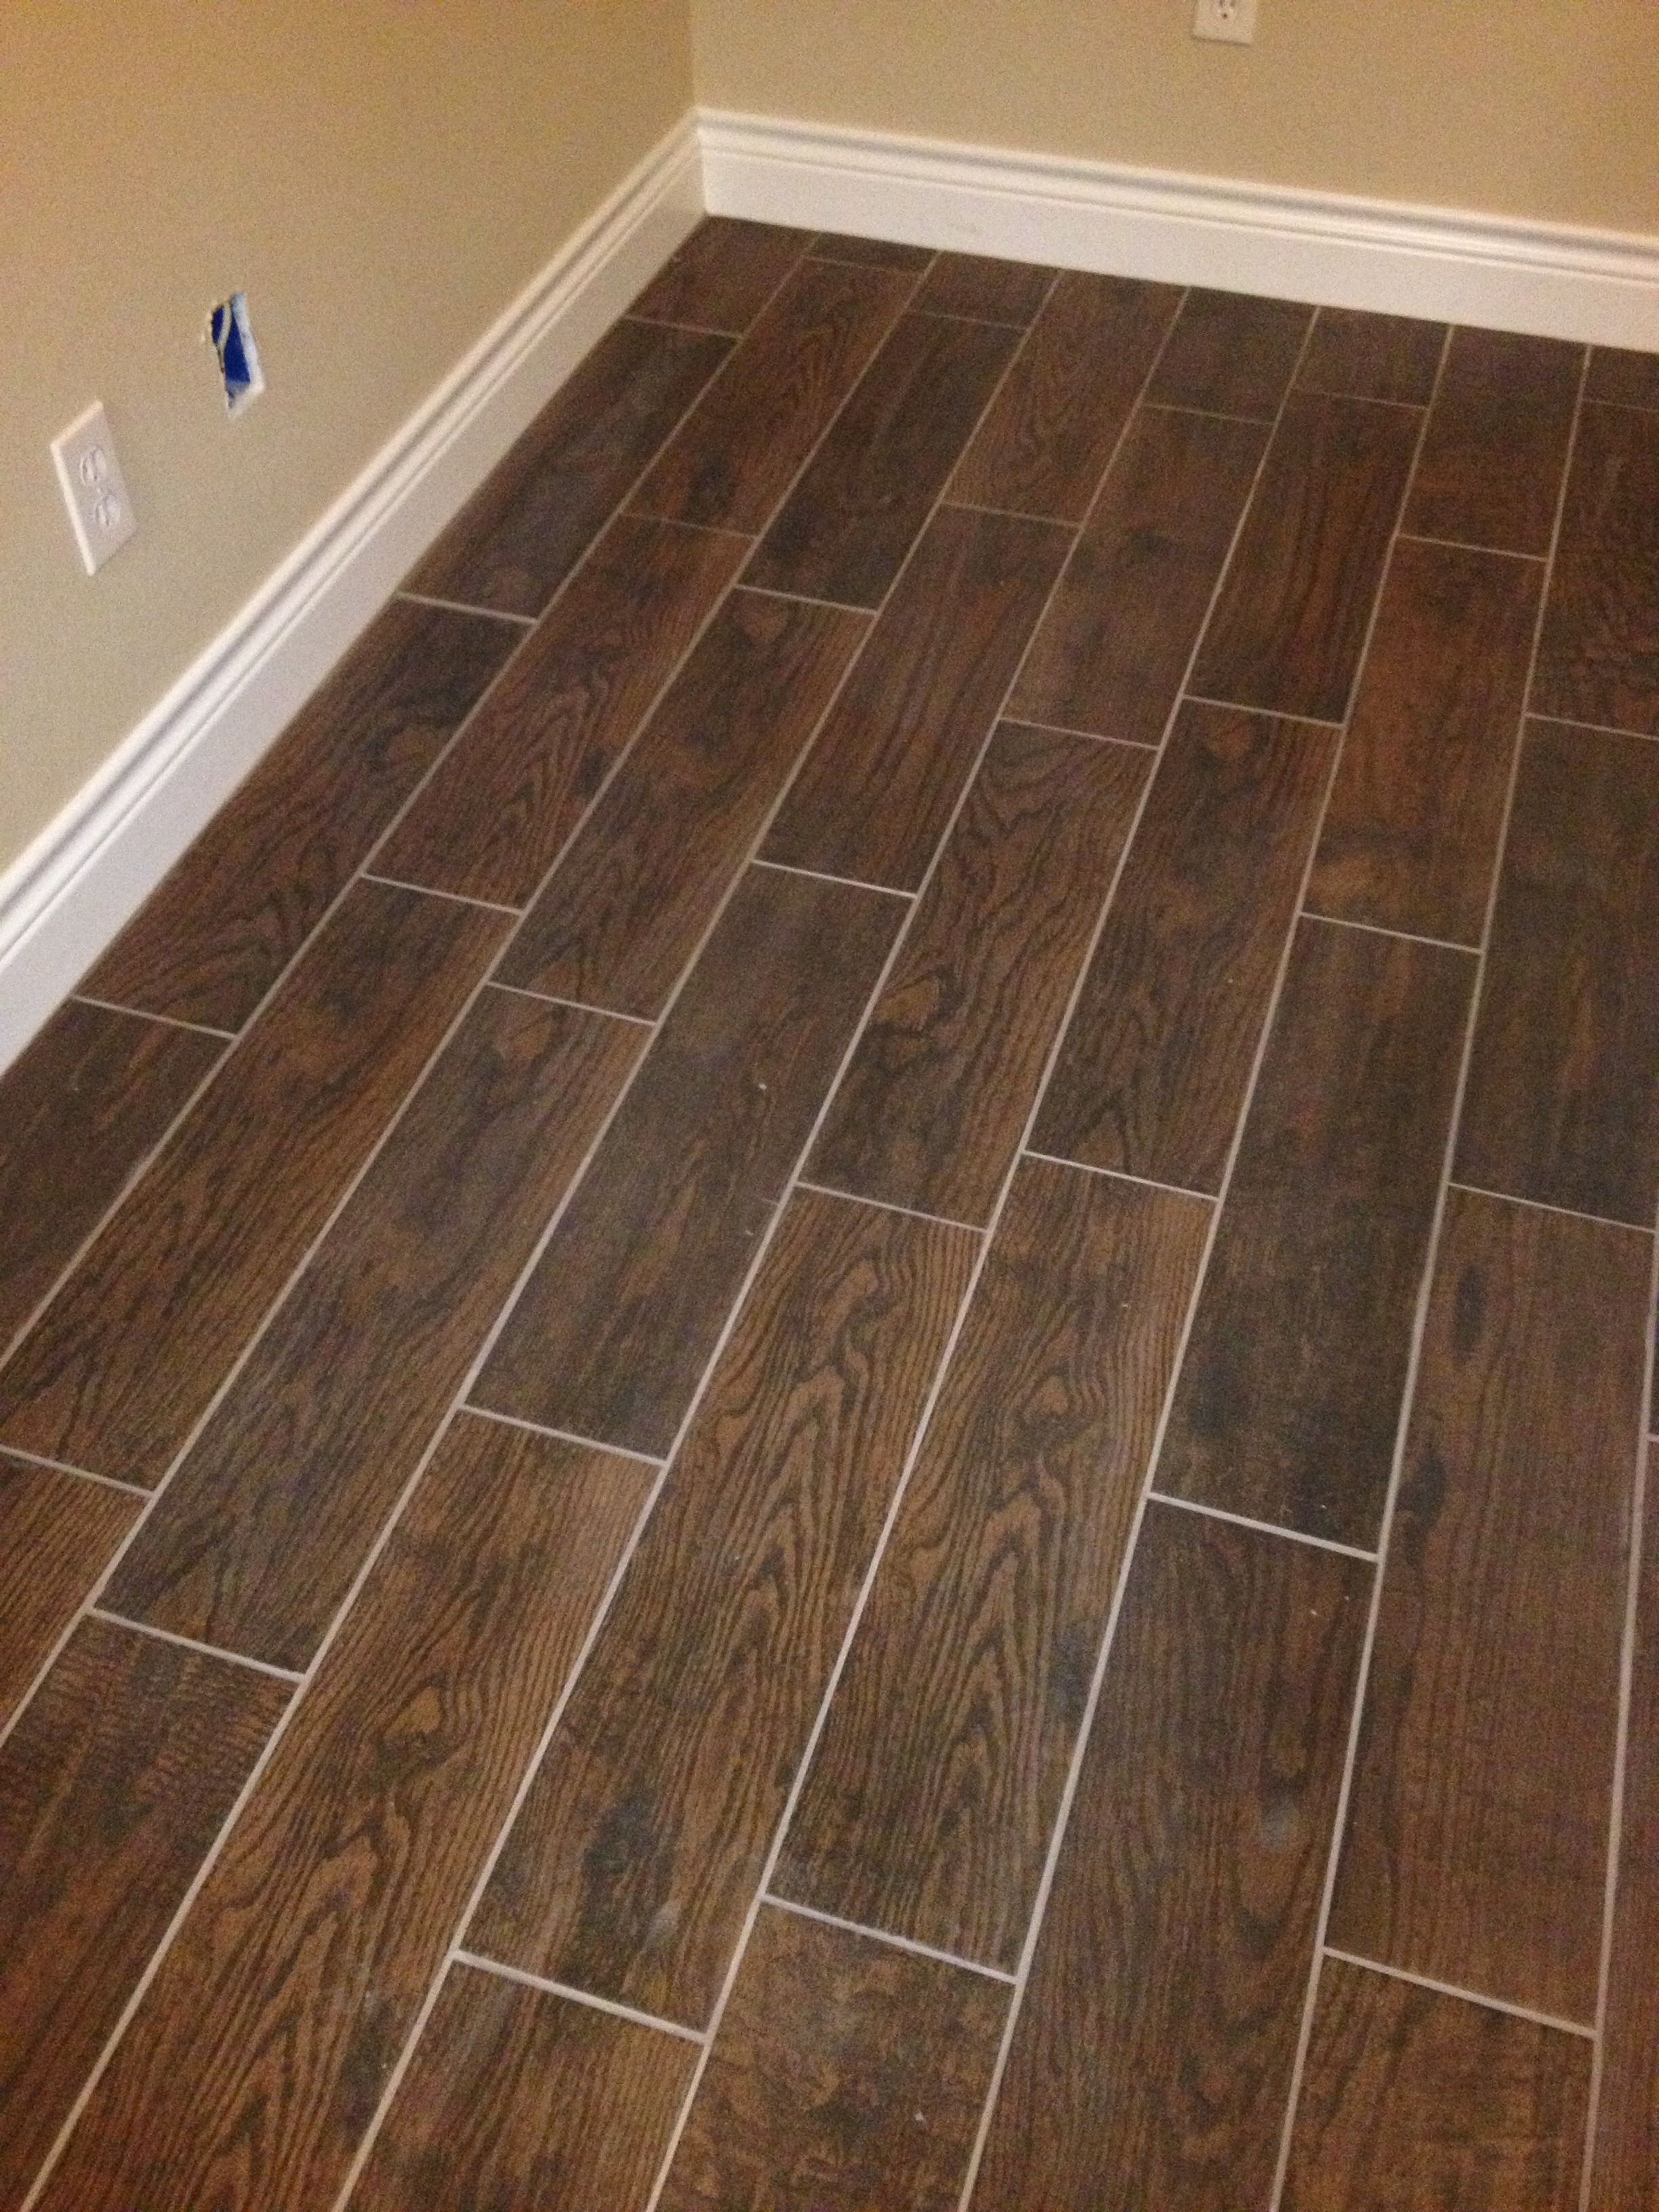 Pin By Kit Bratt Kb Crafting Solut On My Home Colors Creations Decor House Tiles Flooring House Flooring